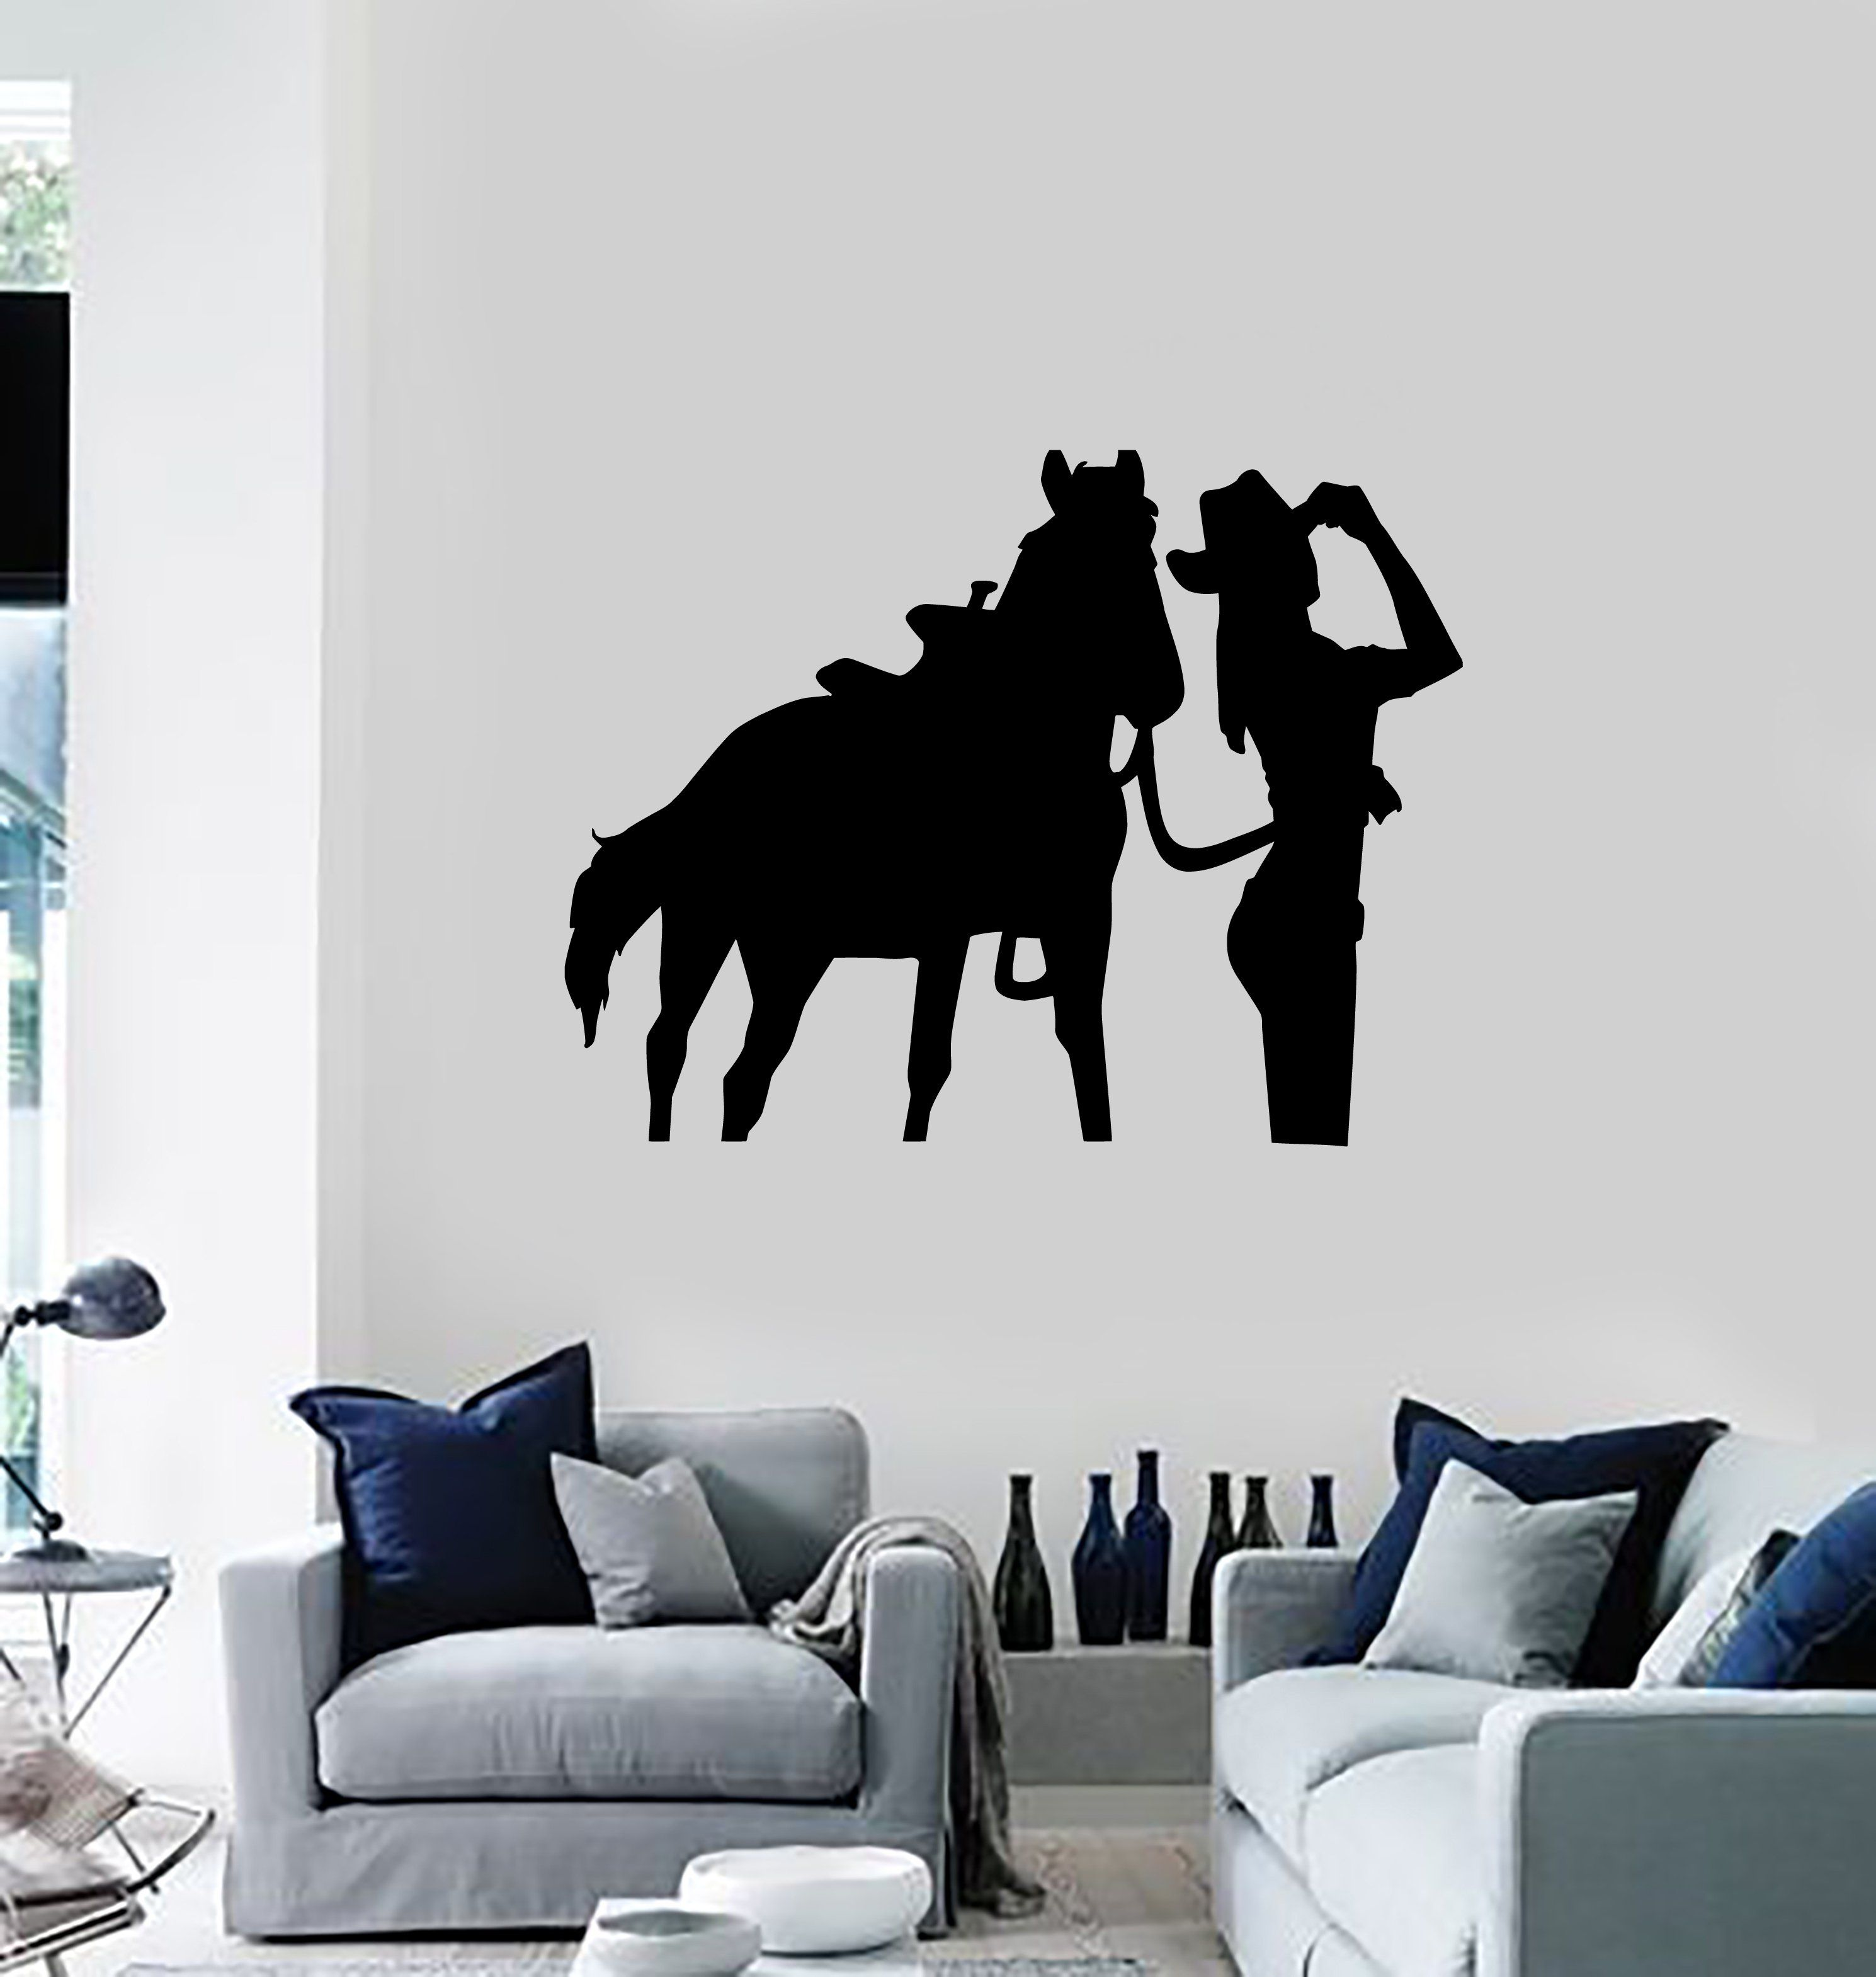 Vinyl Decal Wall Sticker Cowgirl Horse Western Home Decor Unique